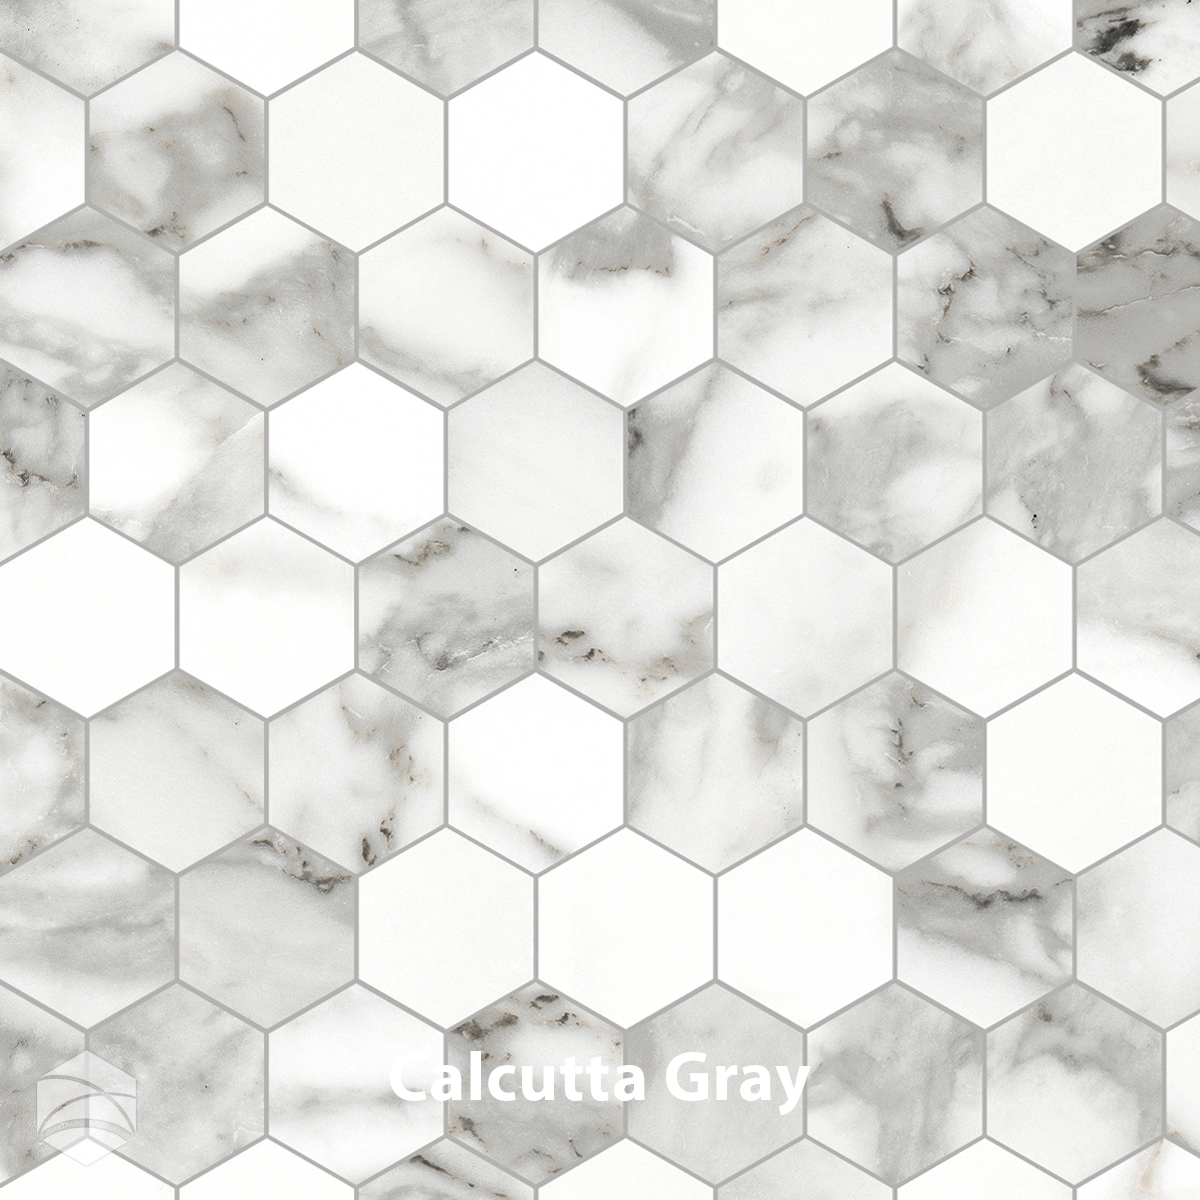 Calcutta Gray_2 in hex_V2_12x12.jpg